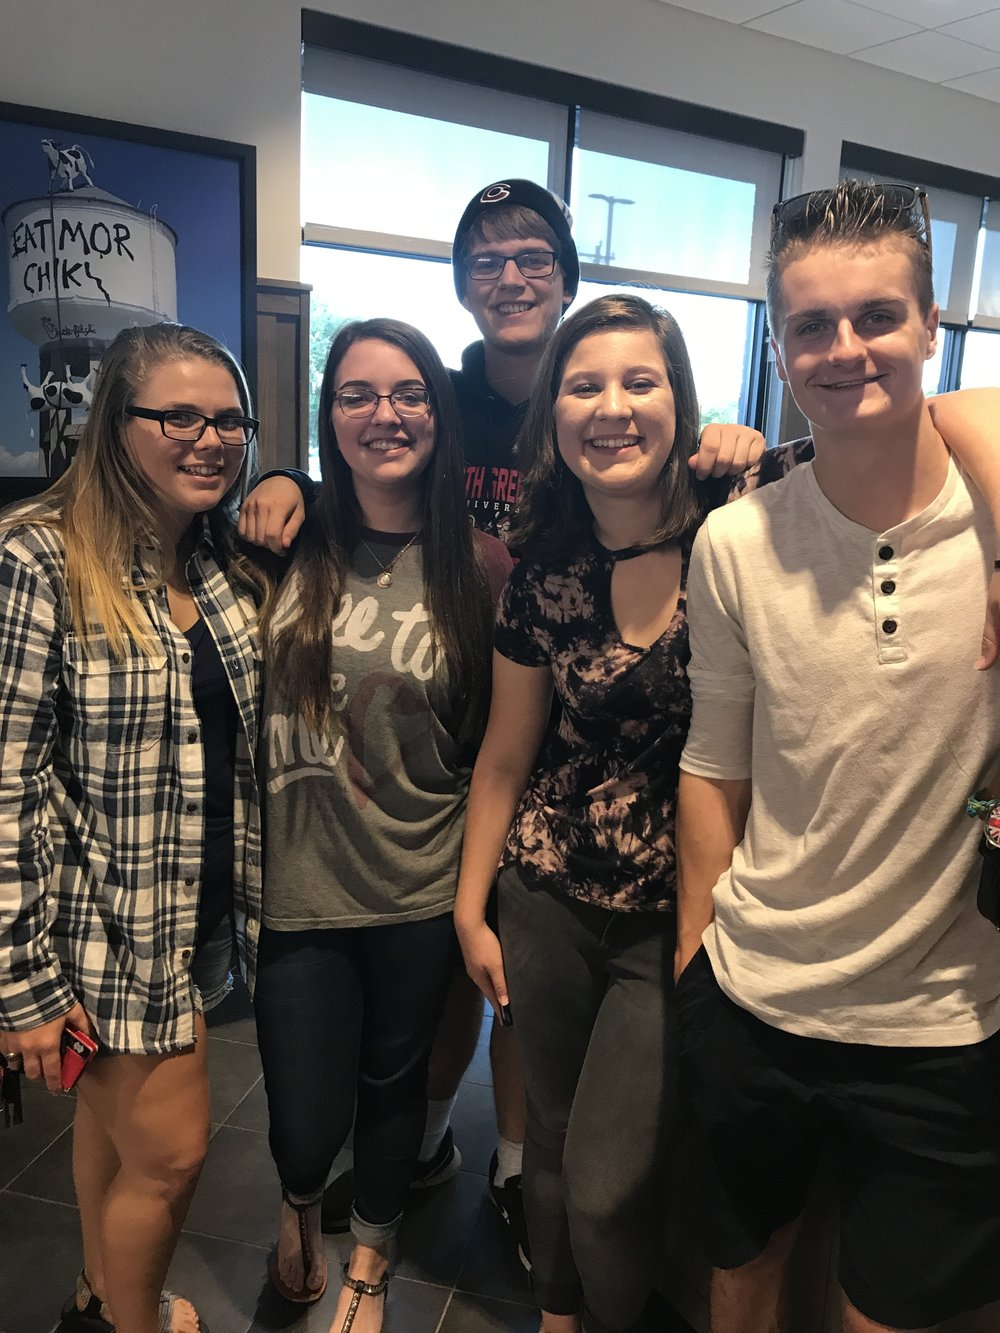 Meredith Kimmer (freshman), Danielle Sumner (freshman), Avery McGrail (freshman), Naomi Schaaf (freshman) and Matt Stromlund (freshman) enjoy hanging out with eachother at the Chick-fil-A grand opening.